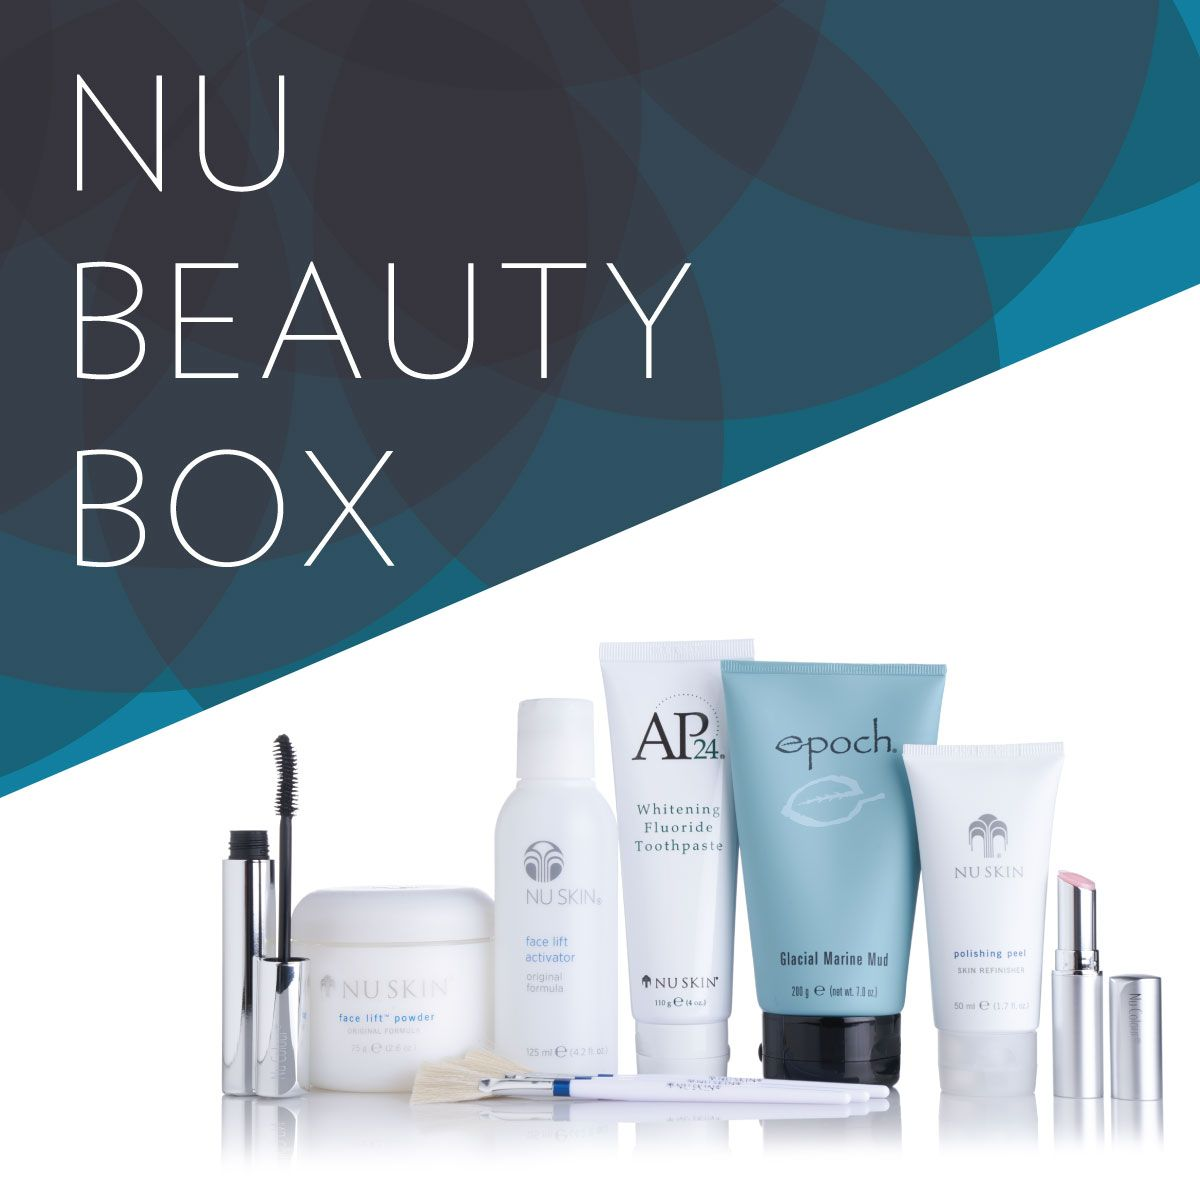 Nu Skin Products: Nu Skin's Beauty Box - Simply Amazing!